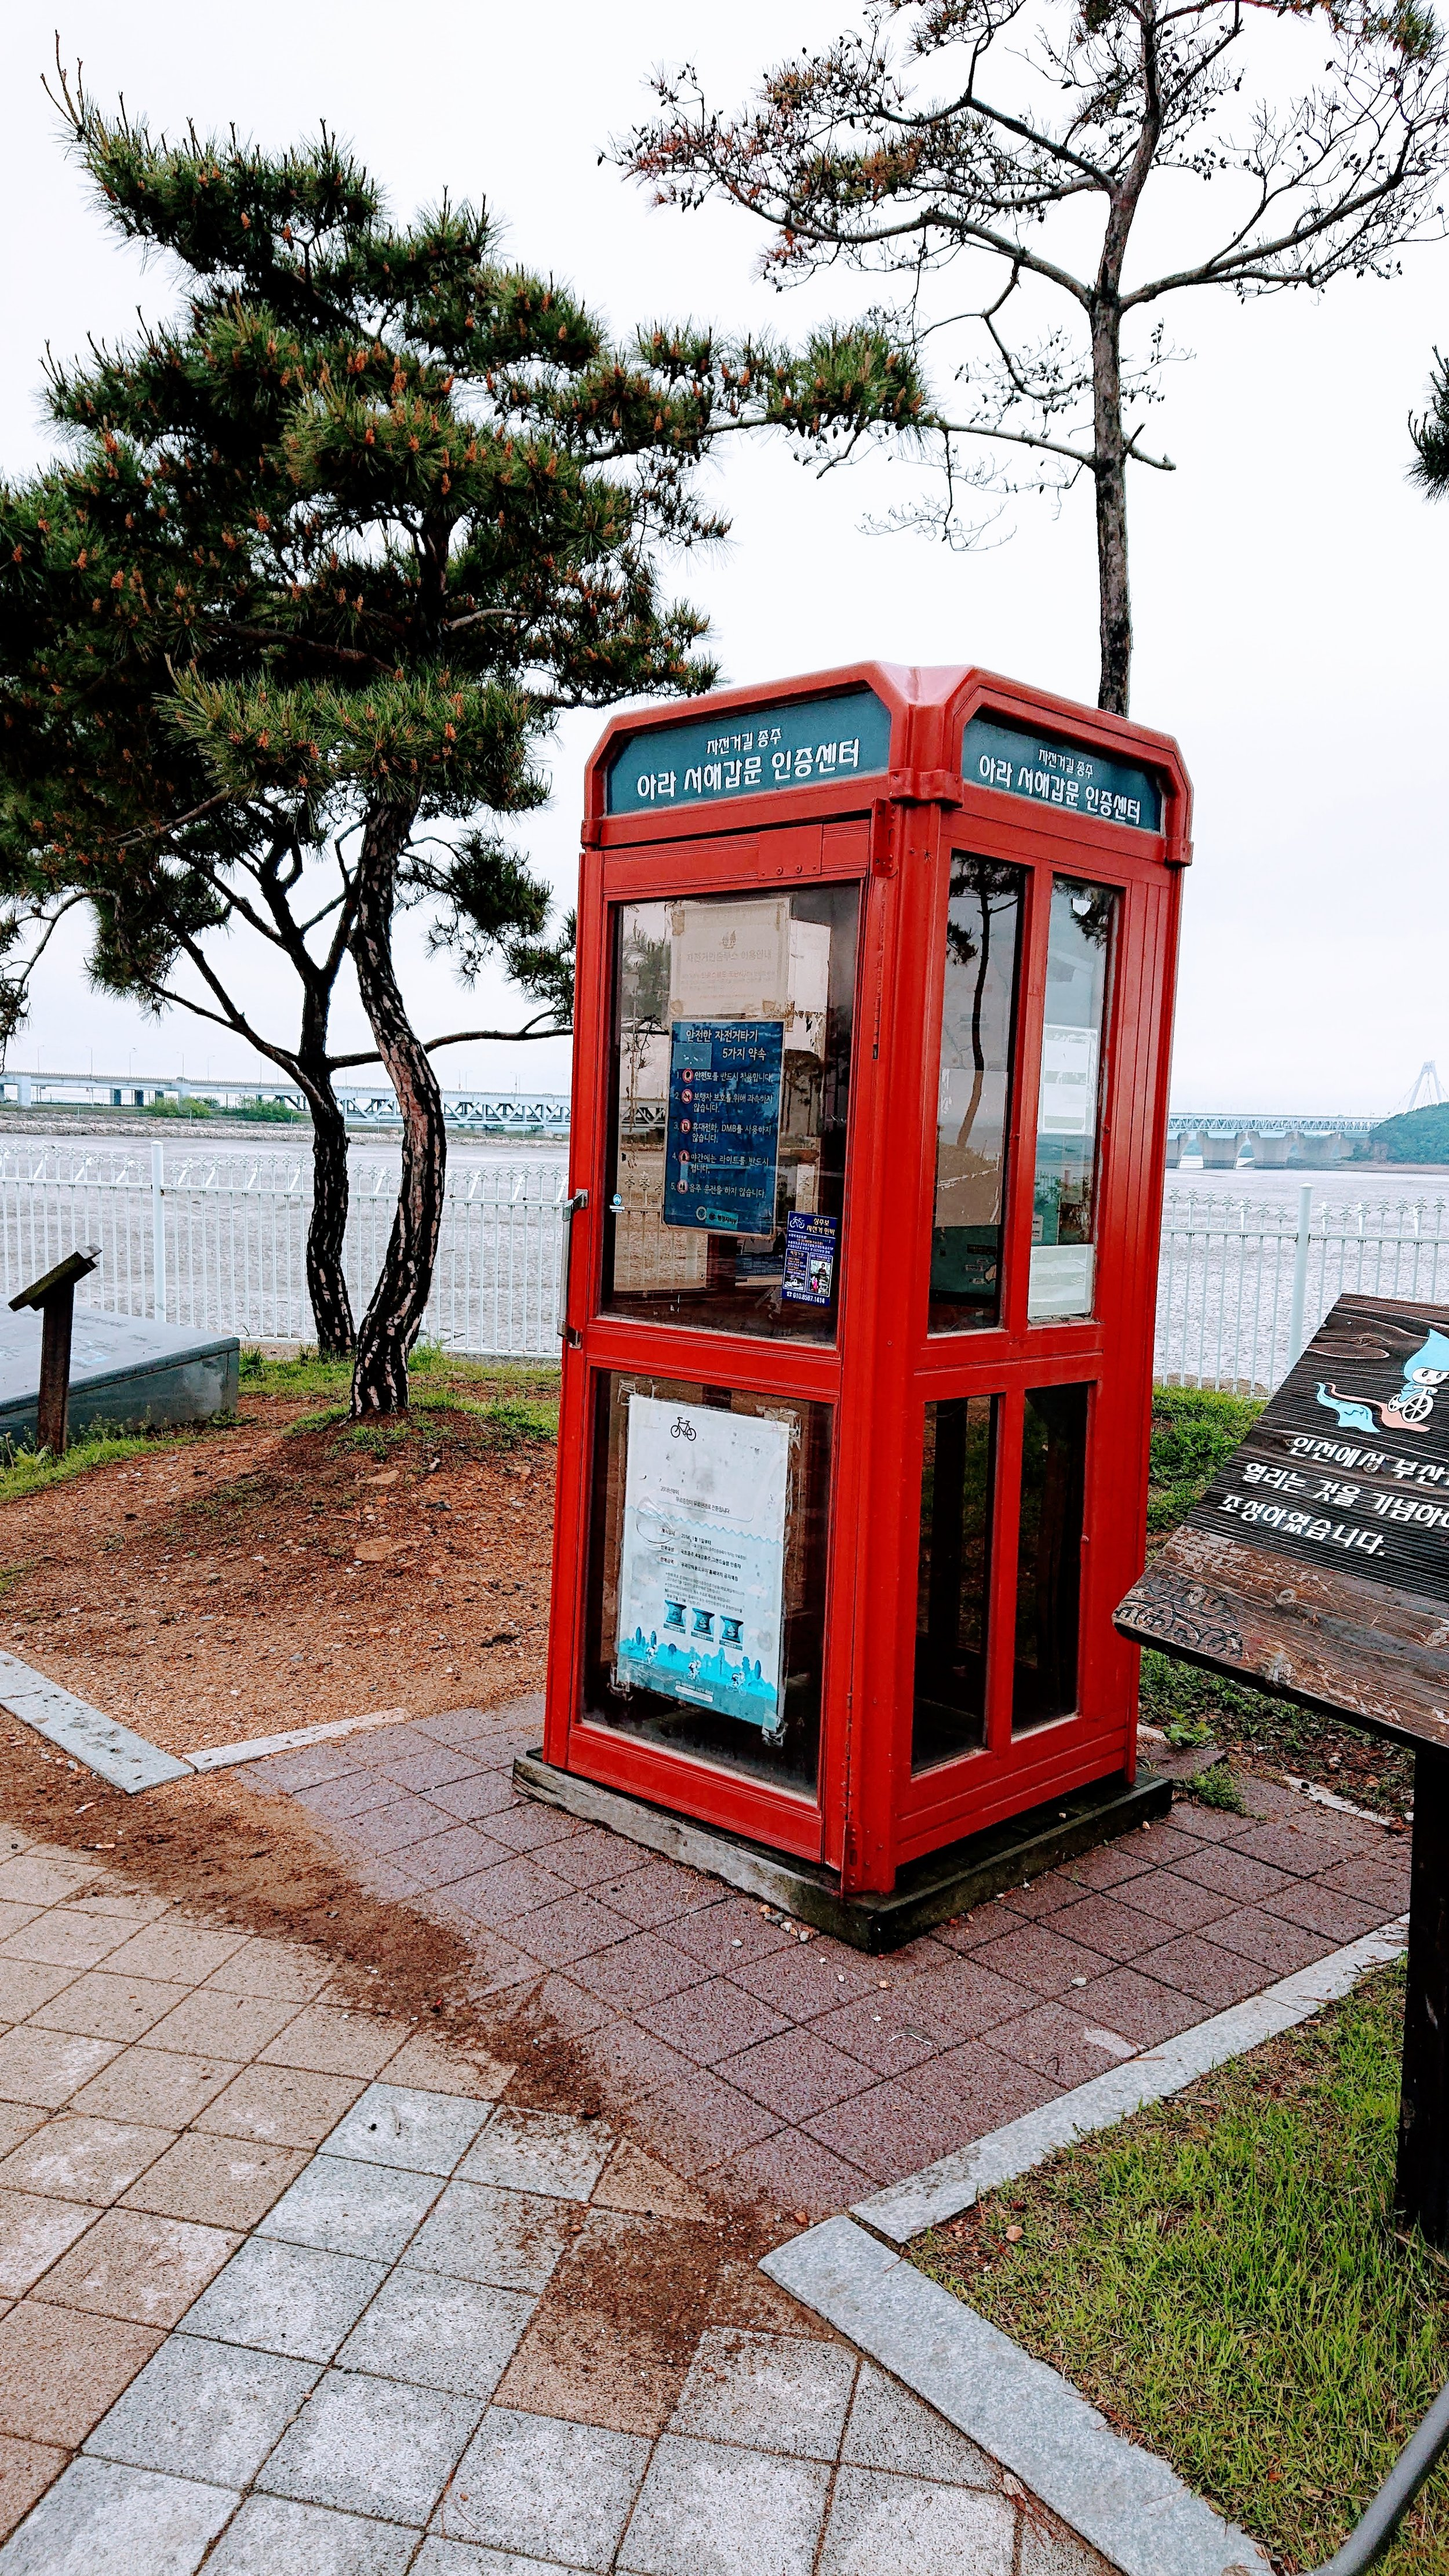 These red phone booths are where a stamp can be procured. They will become a familiar sight on this trip. This is the first one.